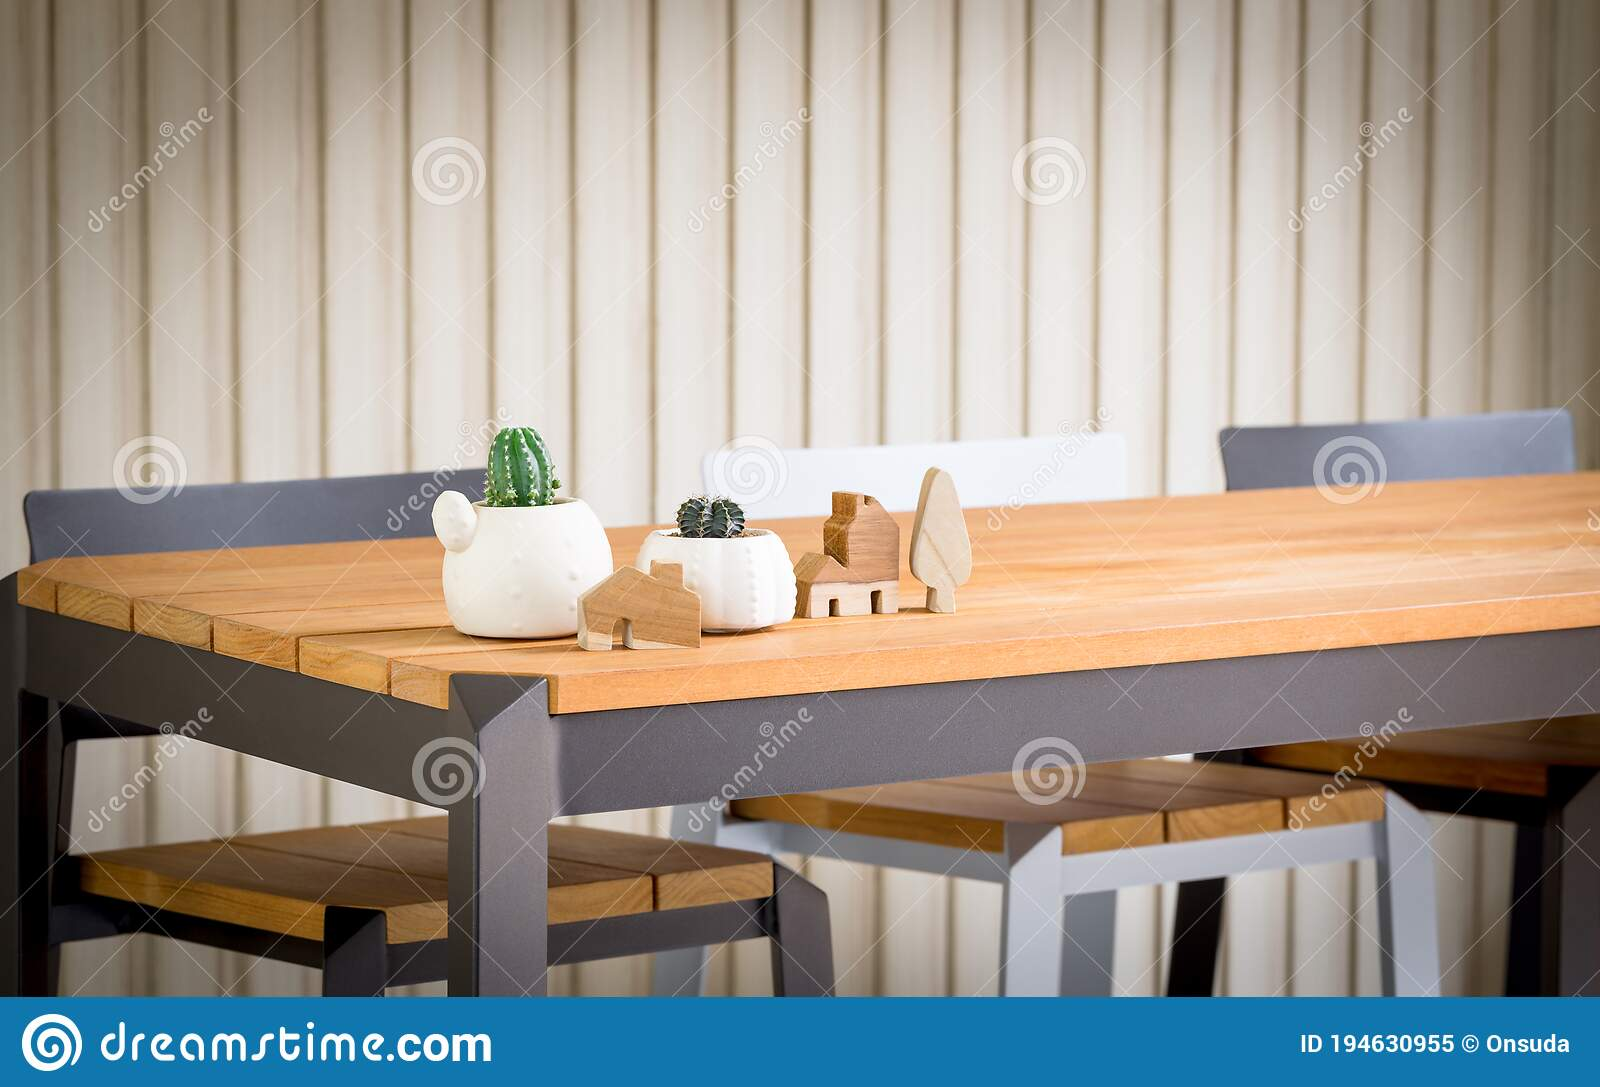 Picture of: Closeup High Wooden Bar Table And Chairs Stock Image Image Of Object Cactus 194630955